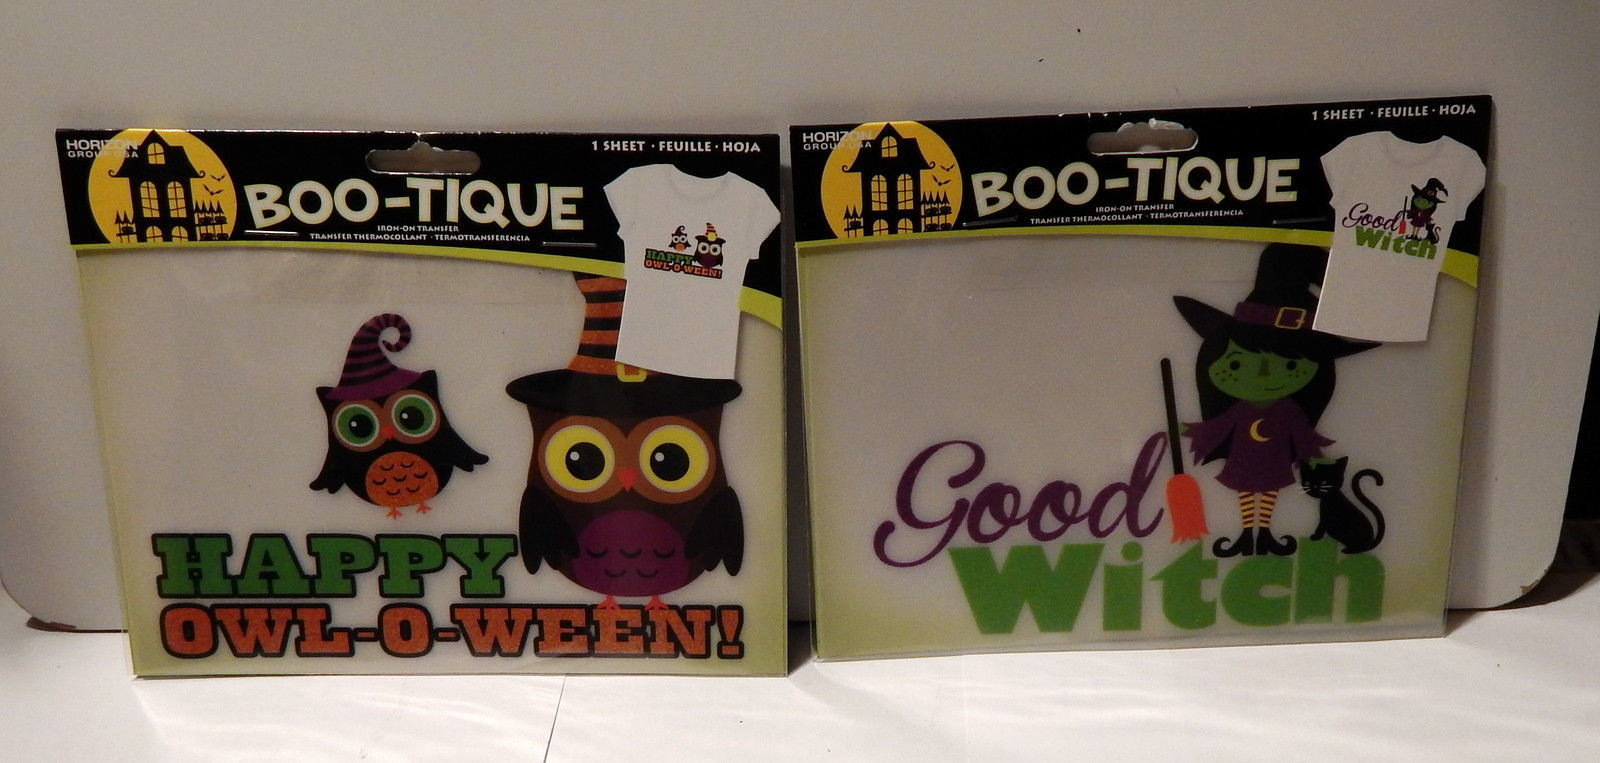 Halloween Boo tique Iron on Transfers Horizon Happy Owl O Ween & Good Witch 36H - $5.91